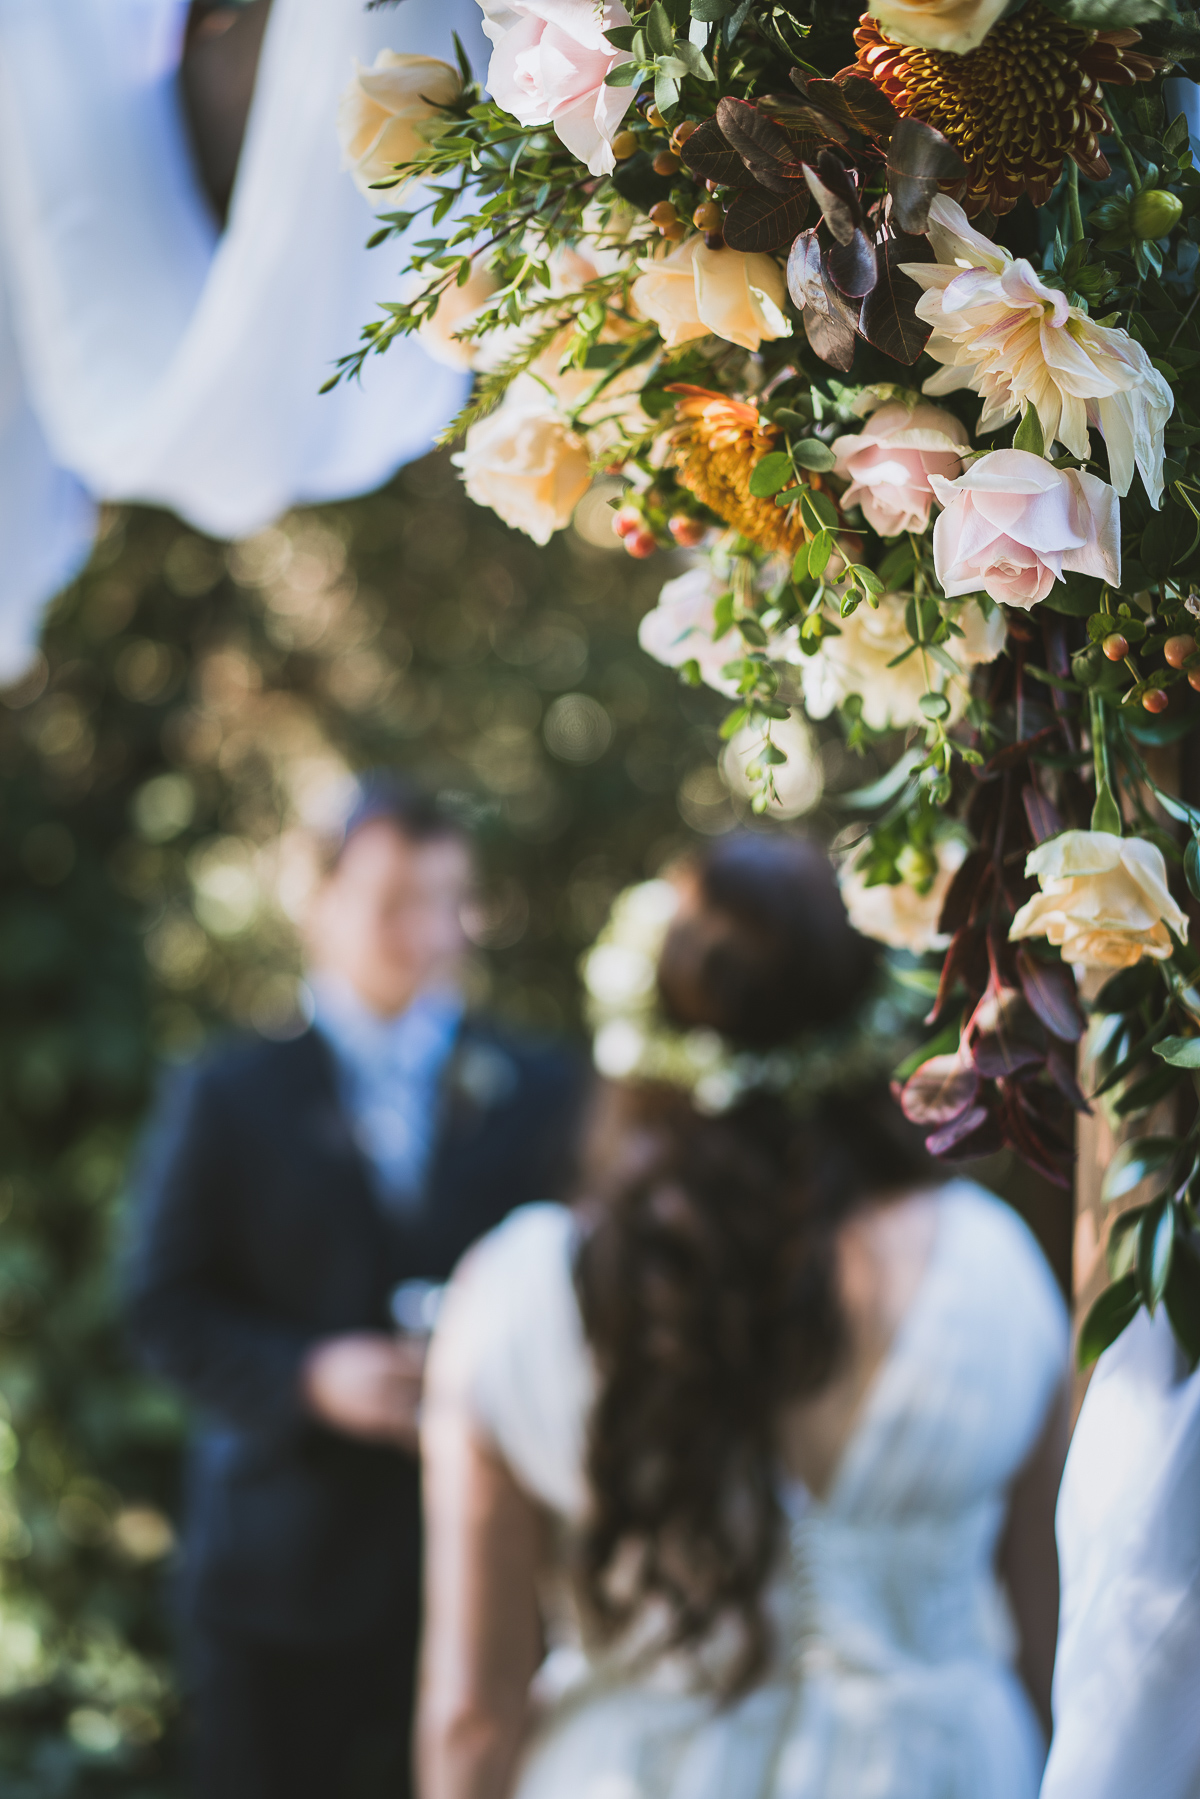 Flowers and the bride